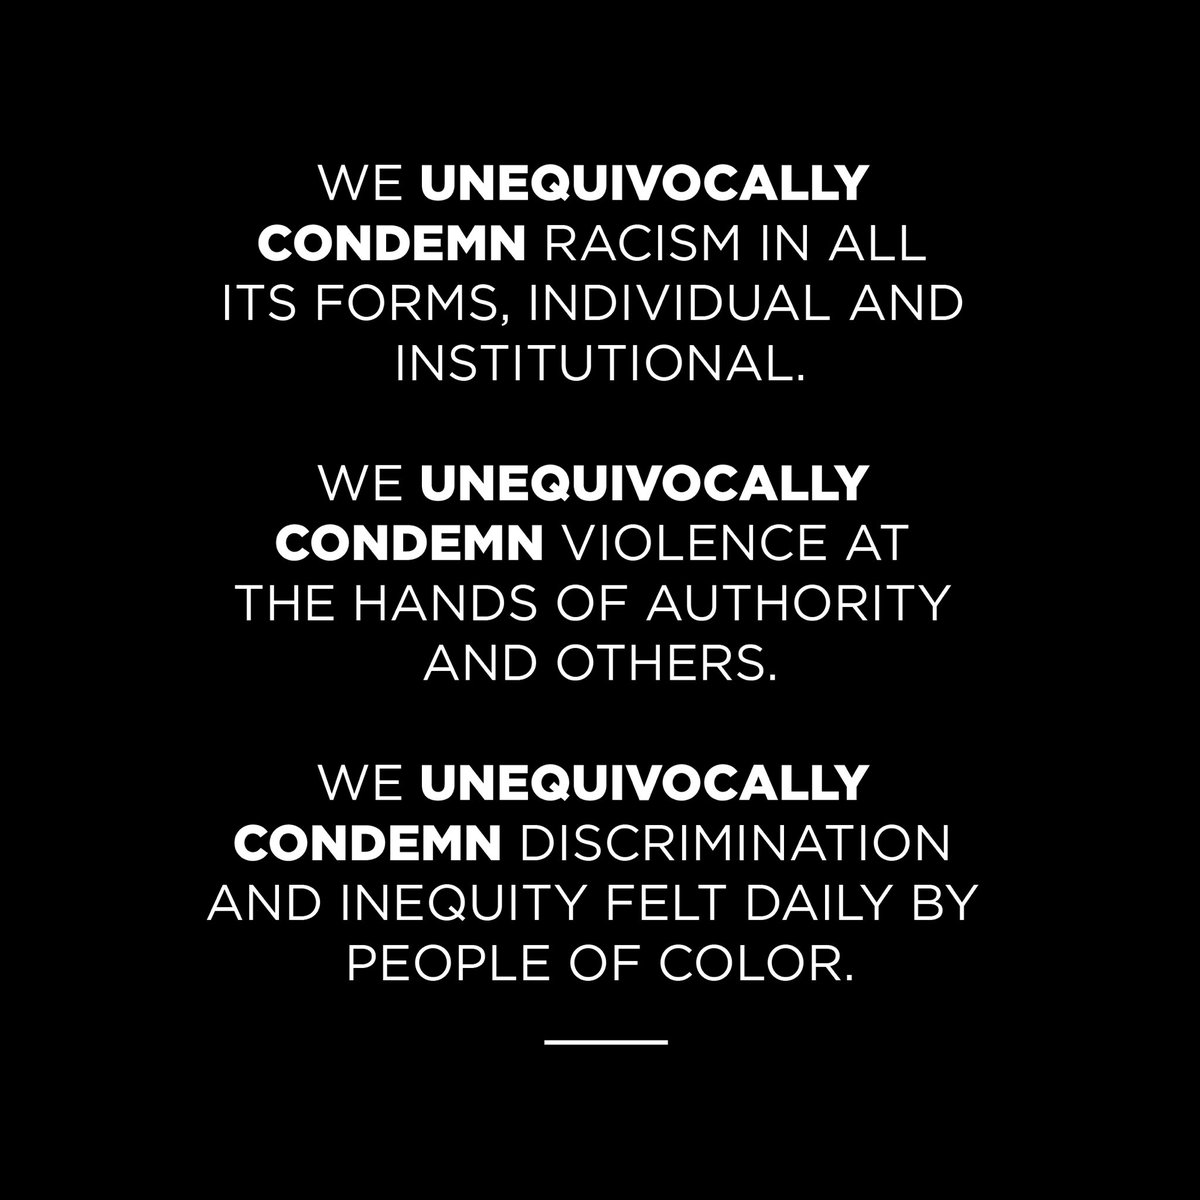 Today, we are observing a Day of Solidarity to stand with all those fighting for equality and social justice in America, and to allow our employees time to process, grieve, reflect, educate themselves, get involved or focus on self-care and mental health. https://t.co/32z9tyzEUc